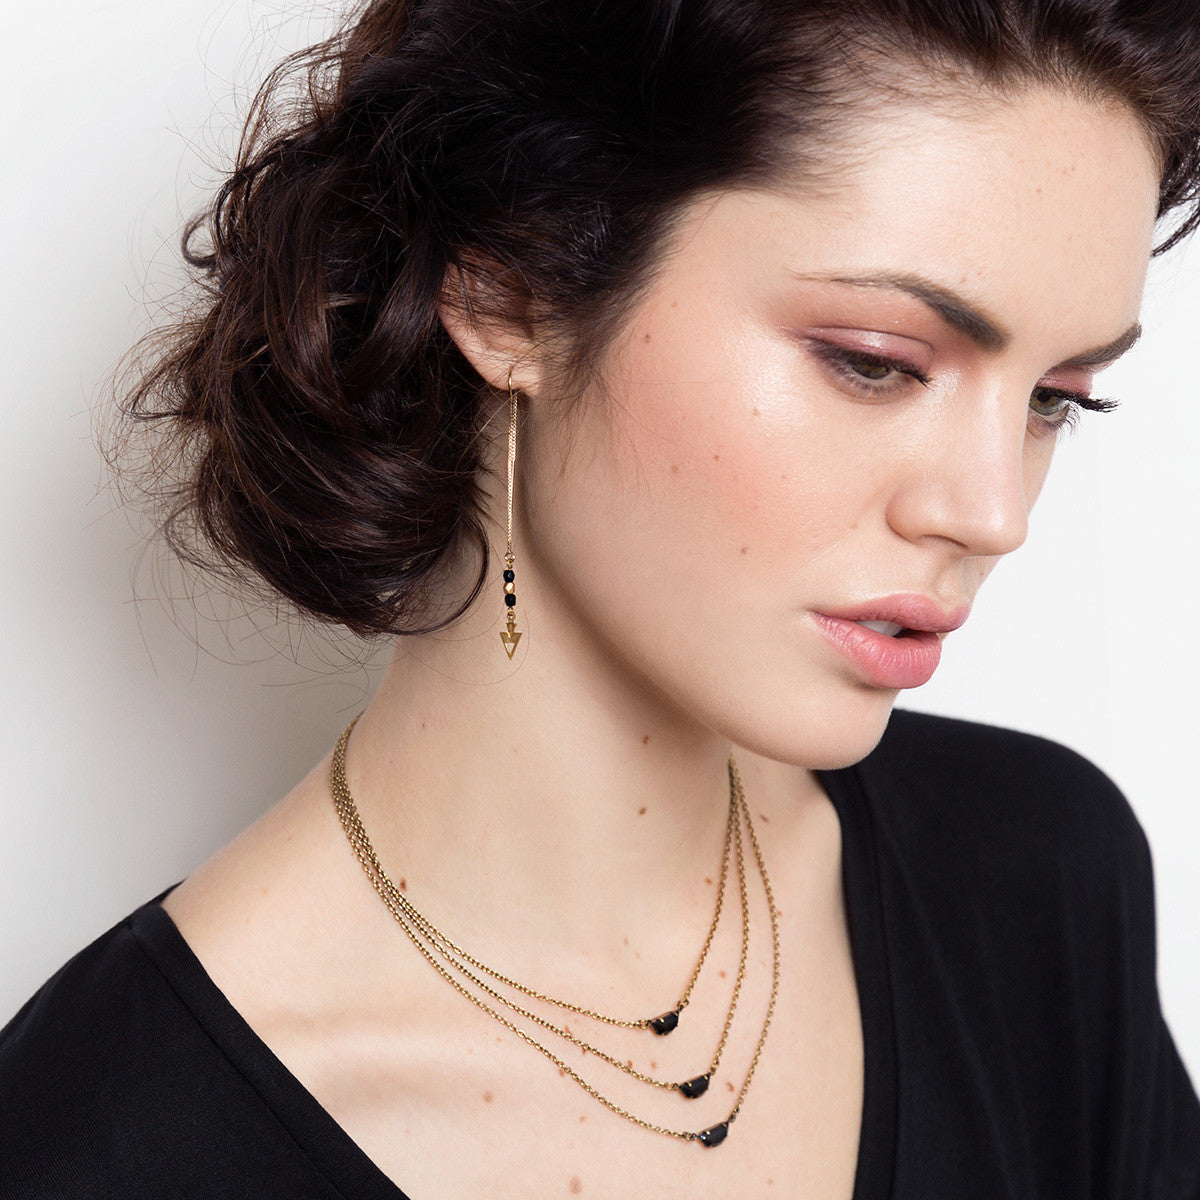 Multi layers necklace and threader earrings on model